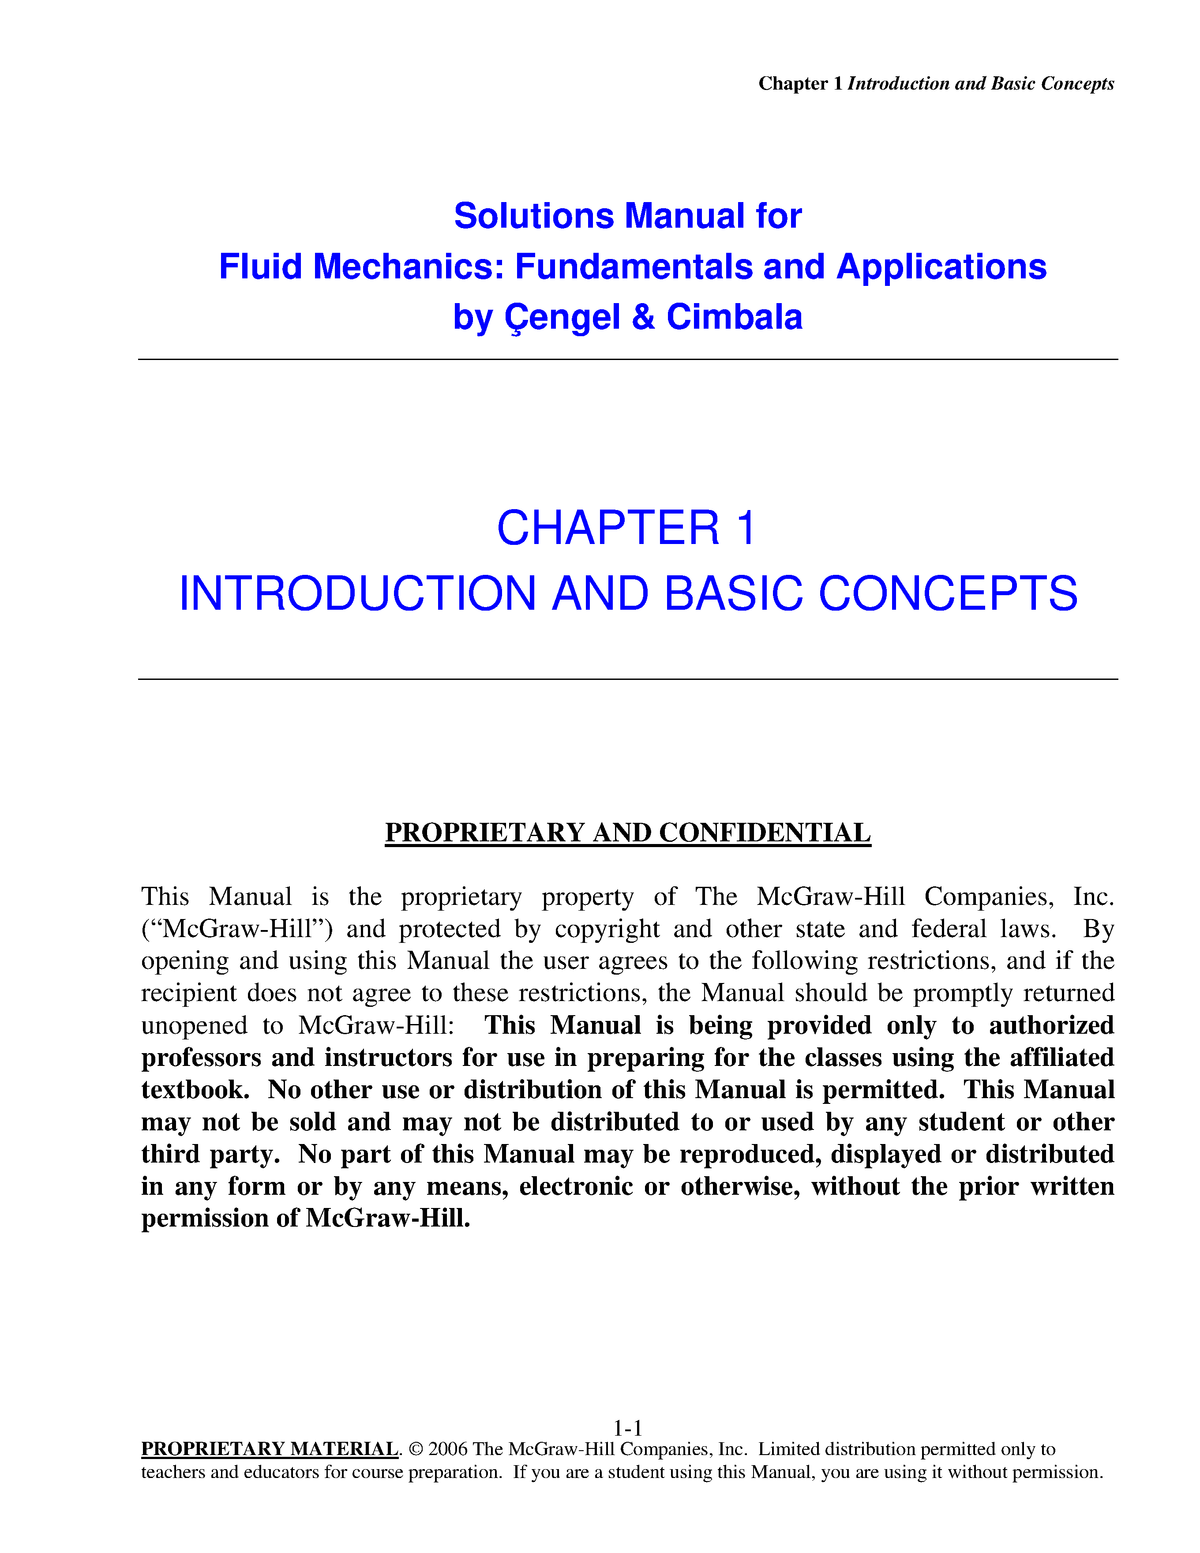 Solution Manual - Fluid Mechanics - Fundamentals And Applications